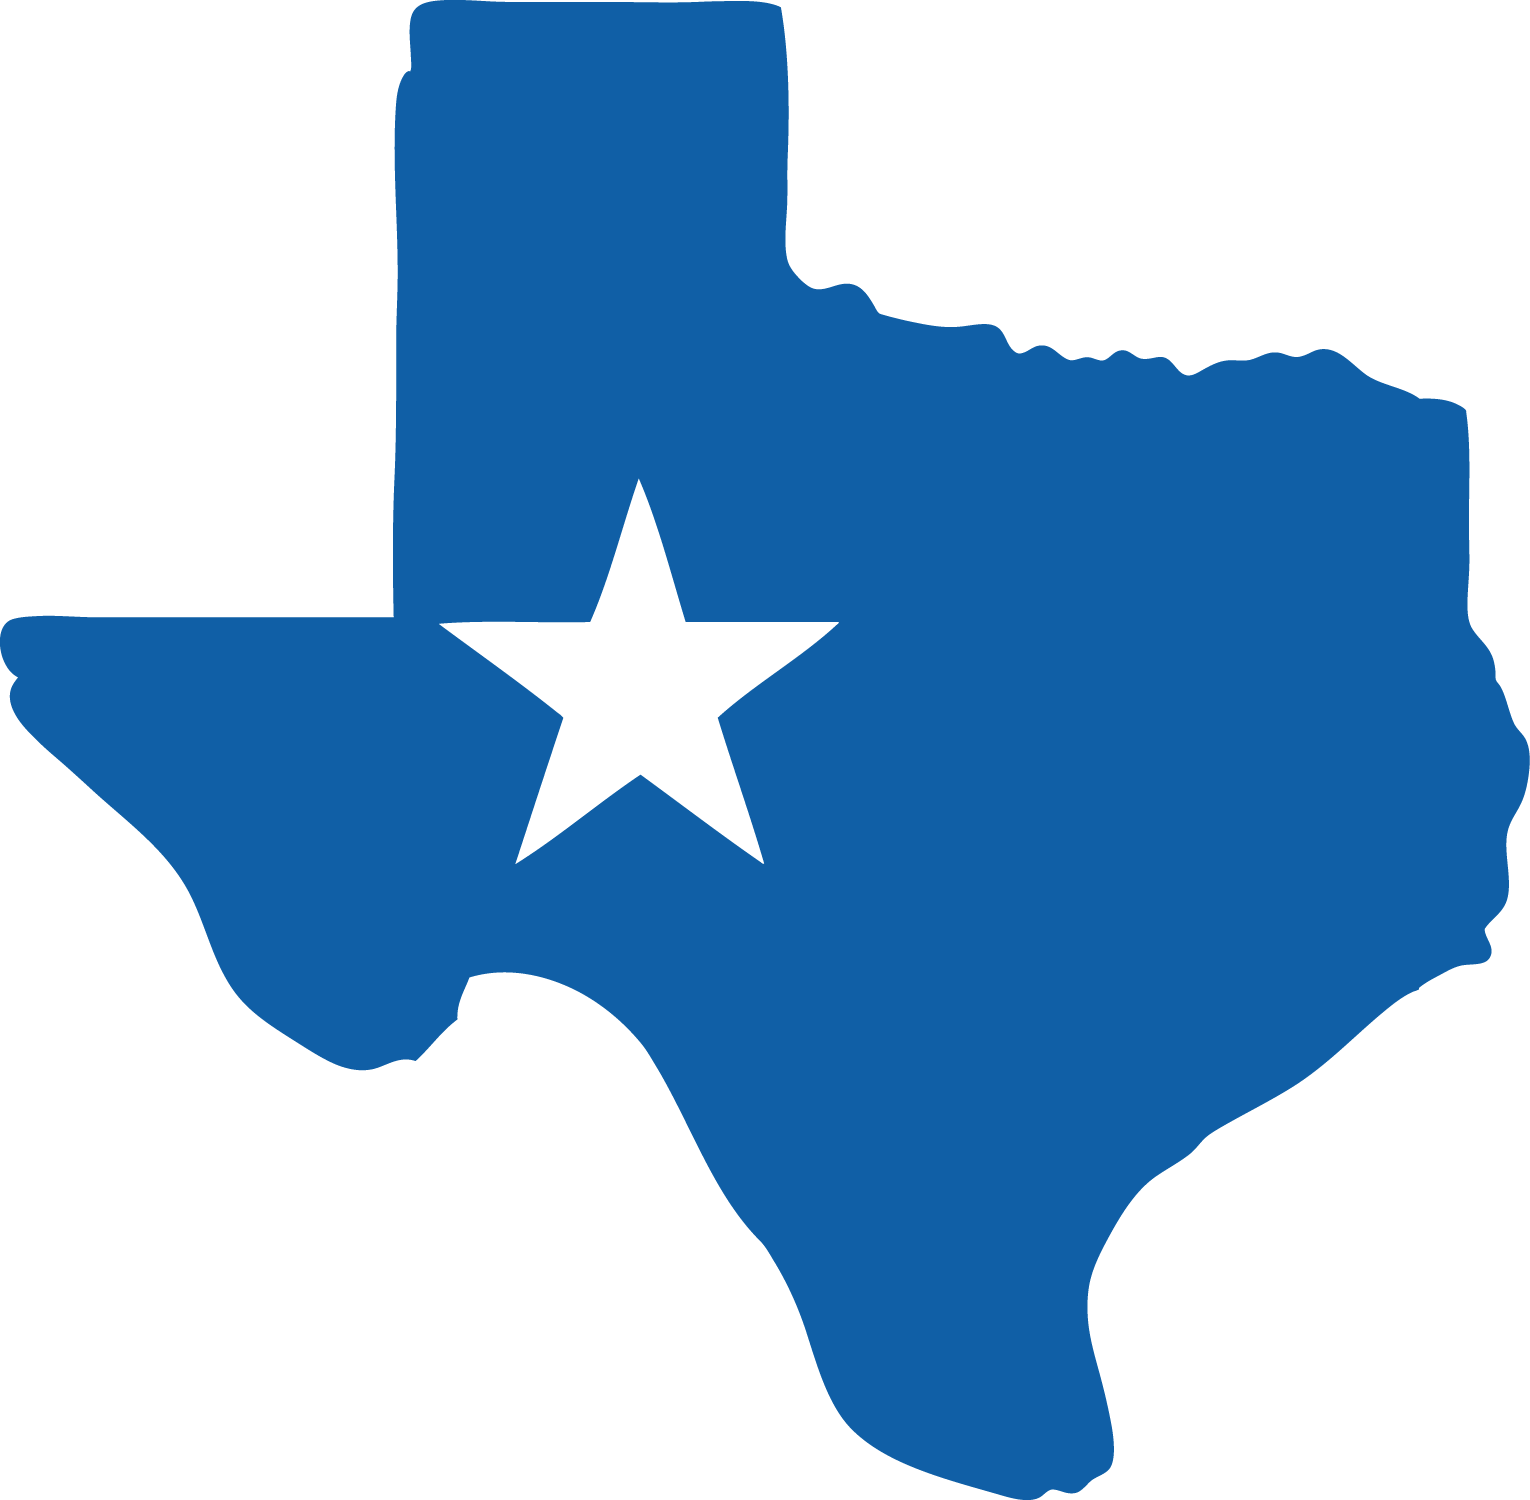 Texas outline clipart free images 5